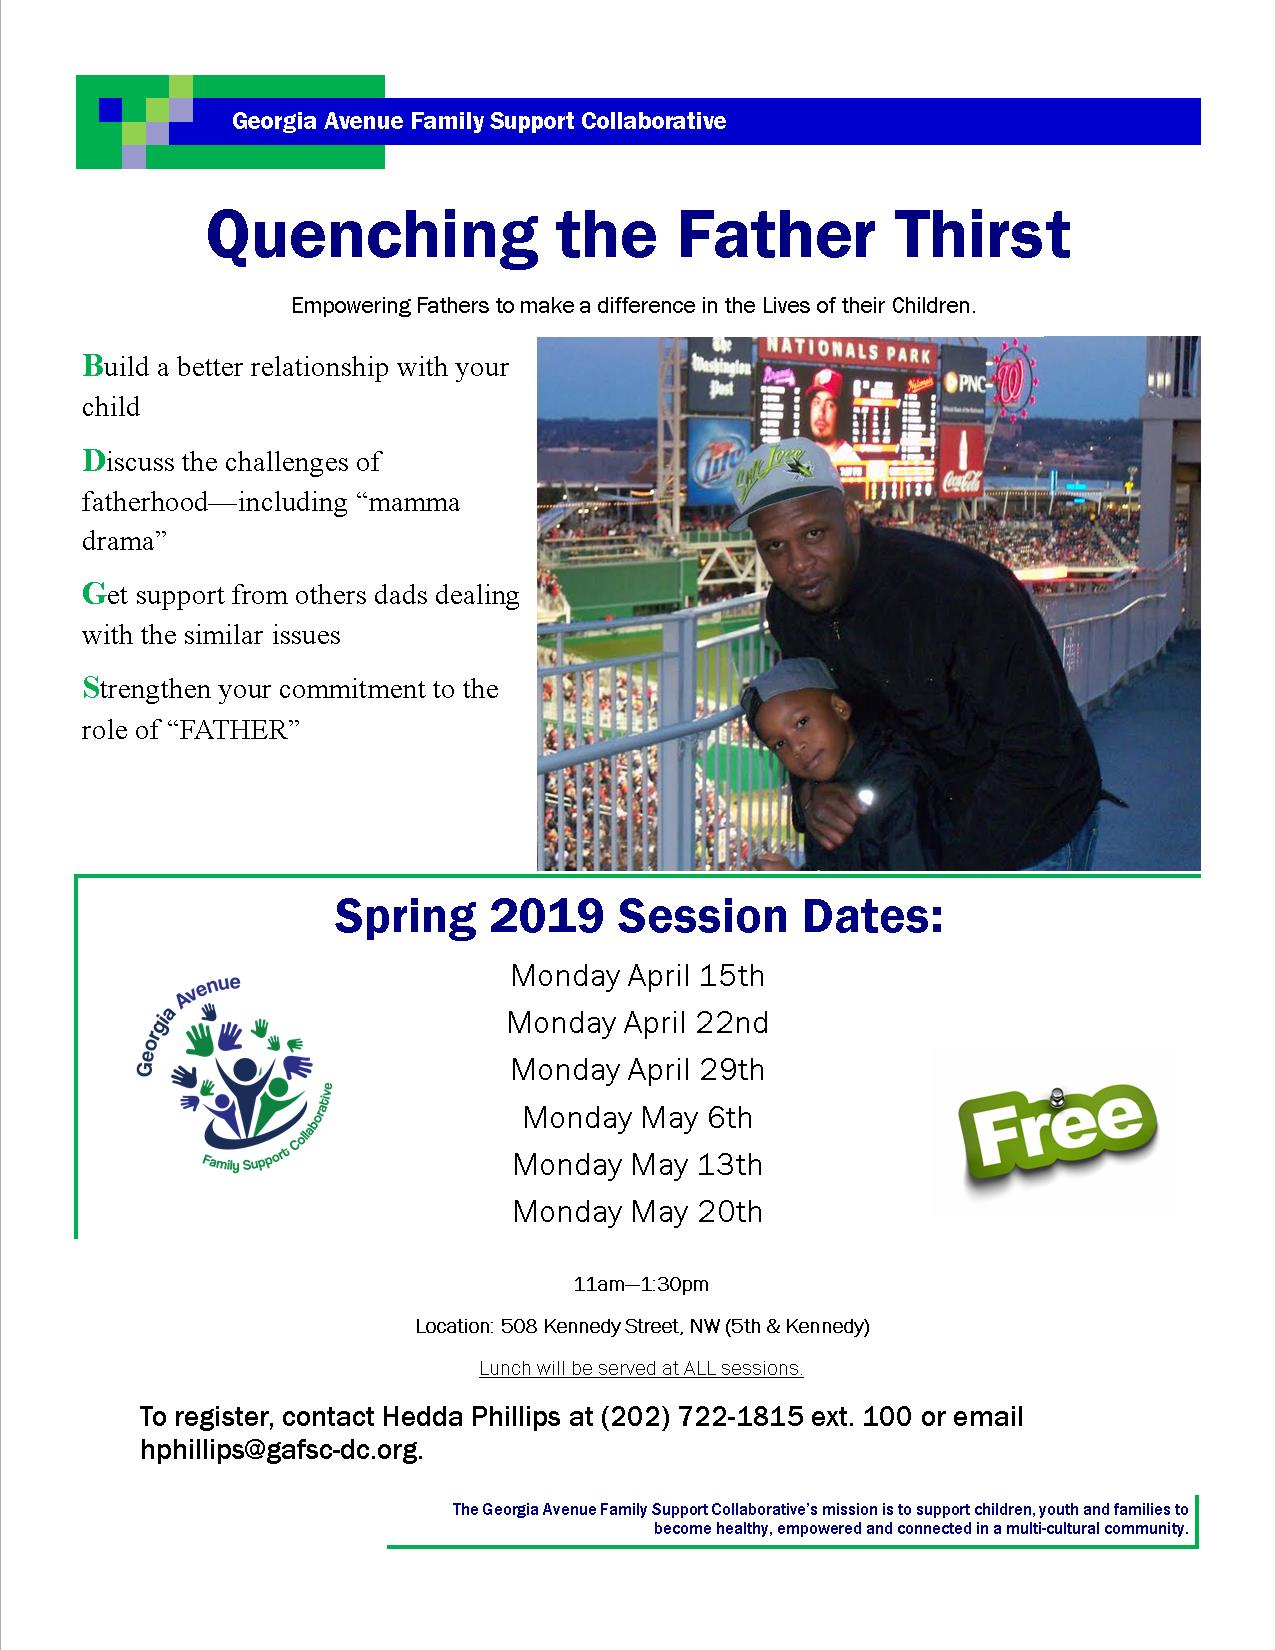 Free parenting training for fathers! April 15th - May 20th